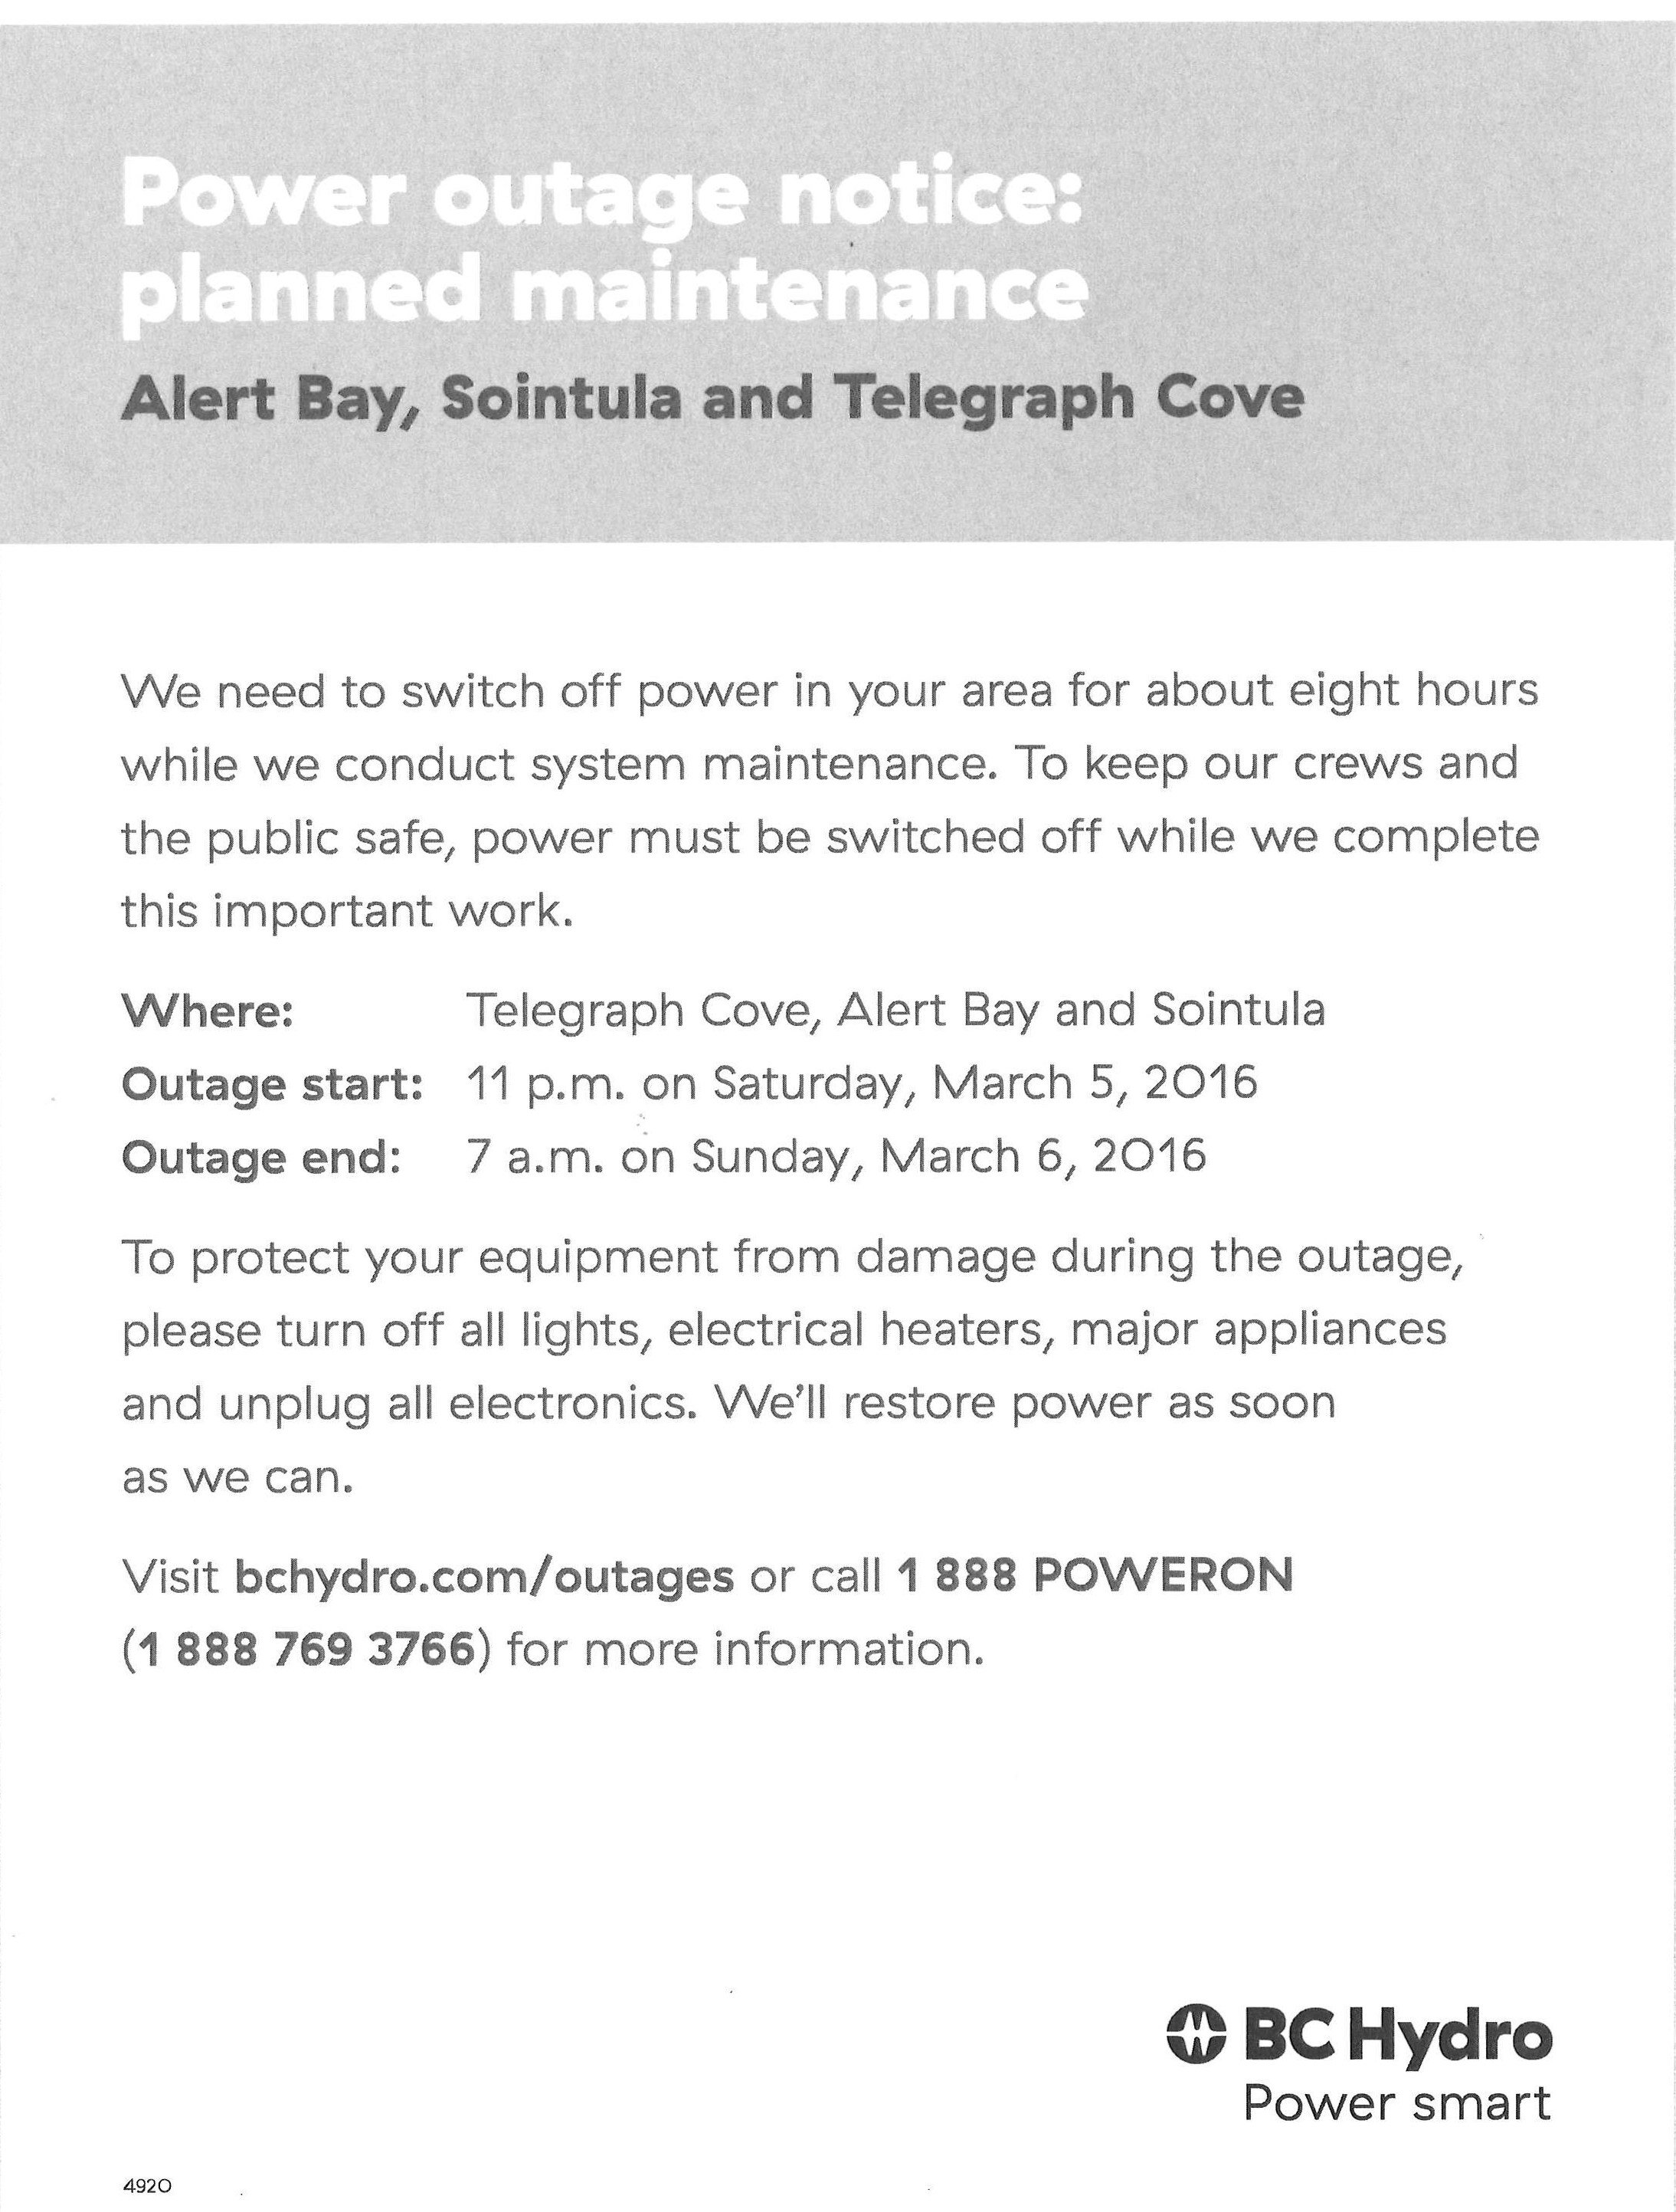 BC Hydro Power Outage Notice  Planned Maintenance — Village of Alert Bay